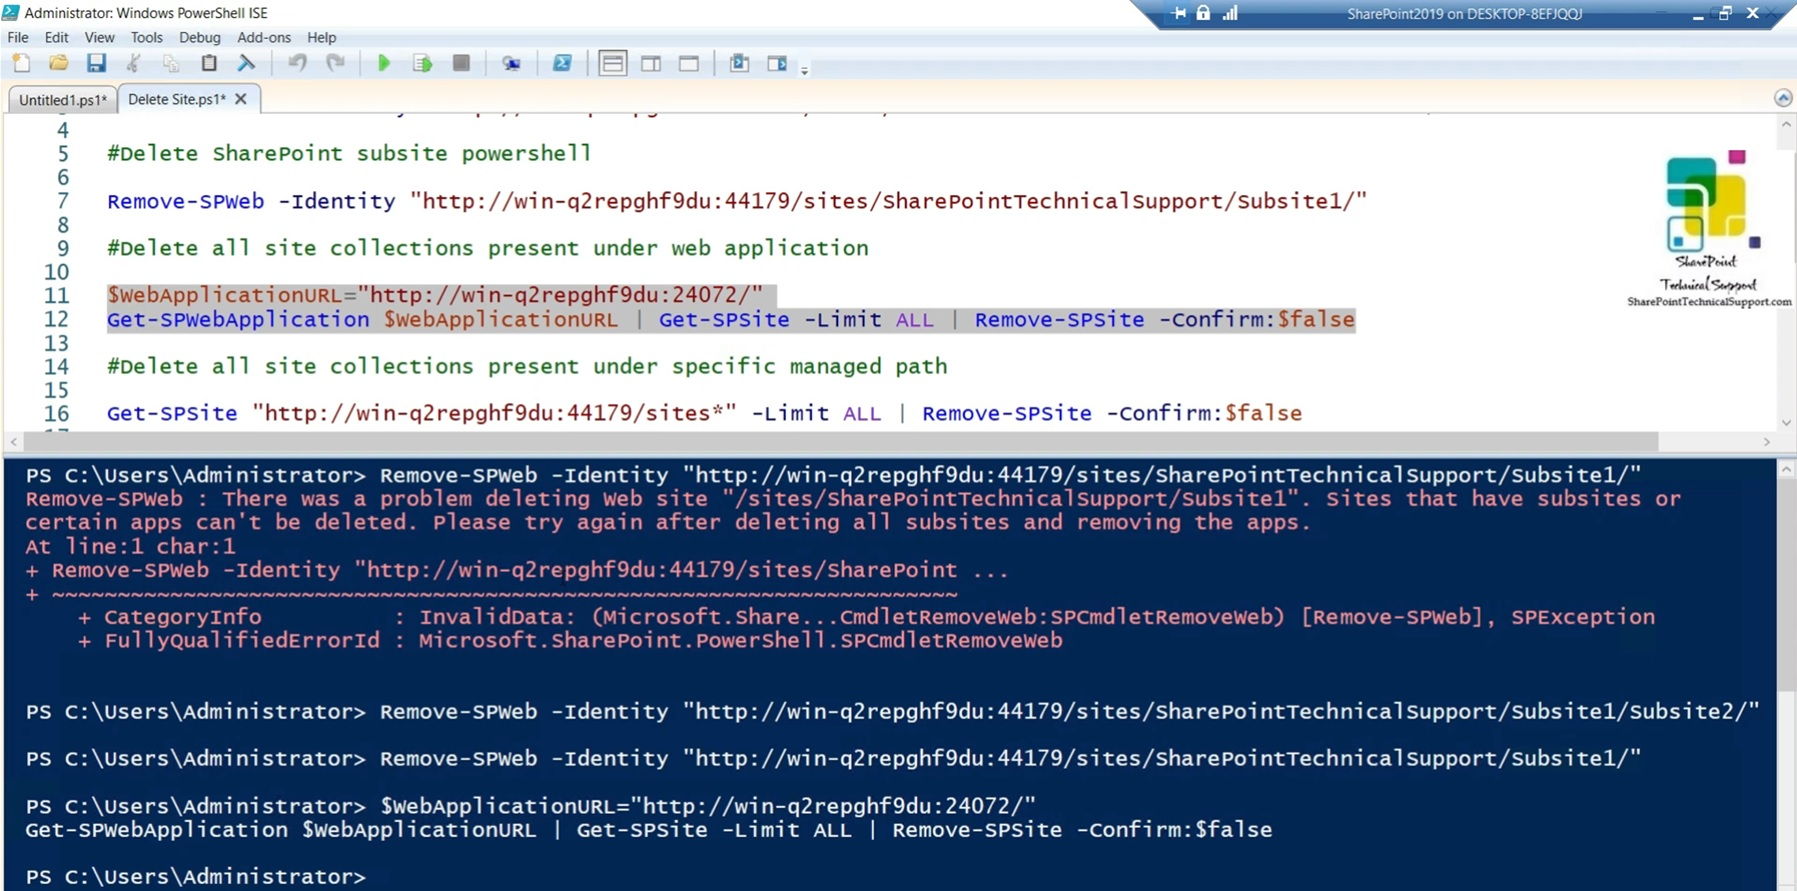 Delete all site collections present under web application